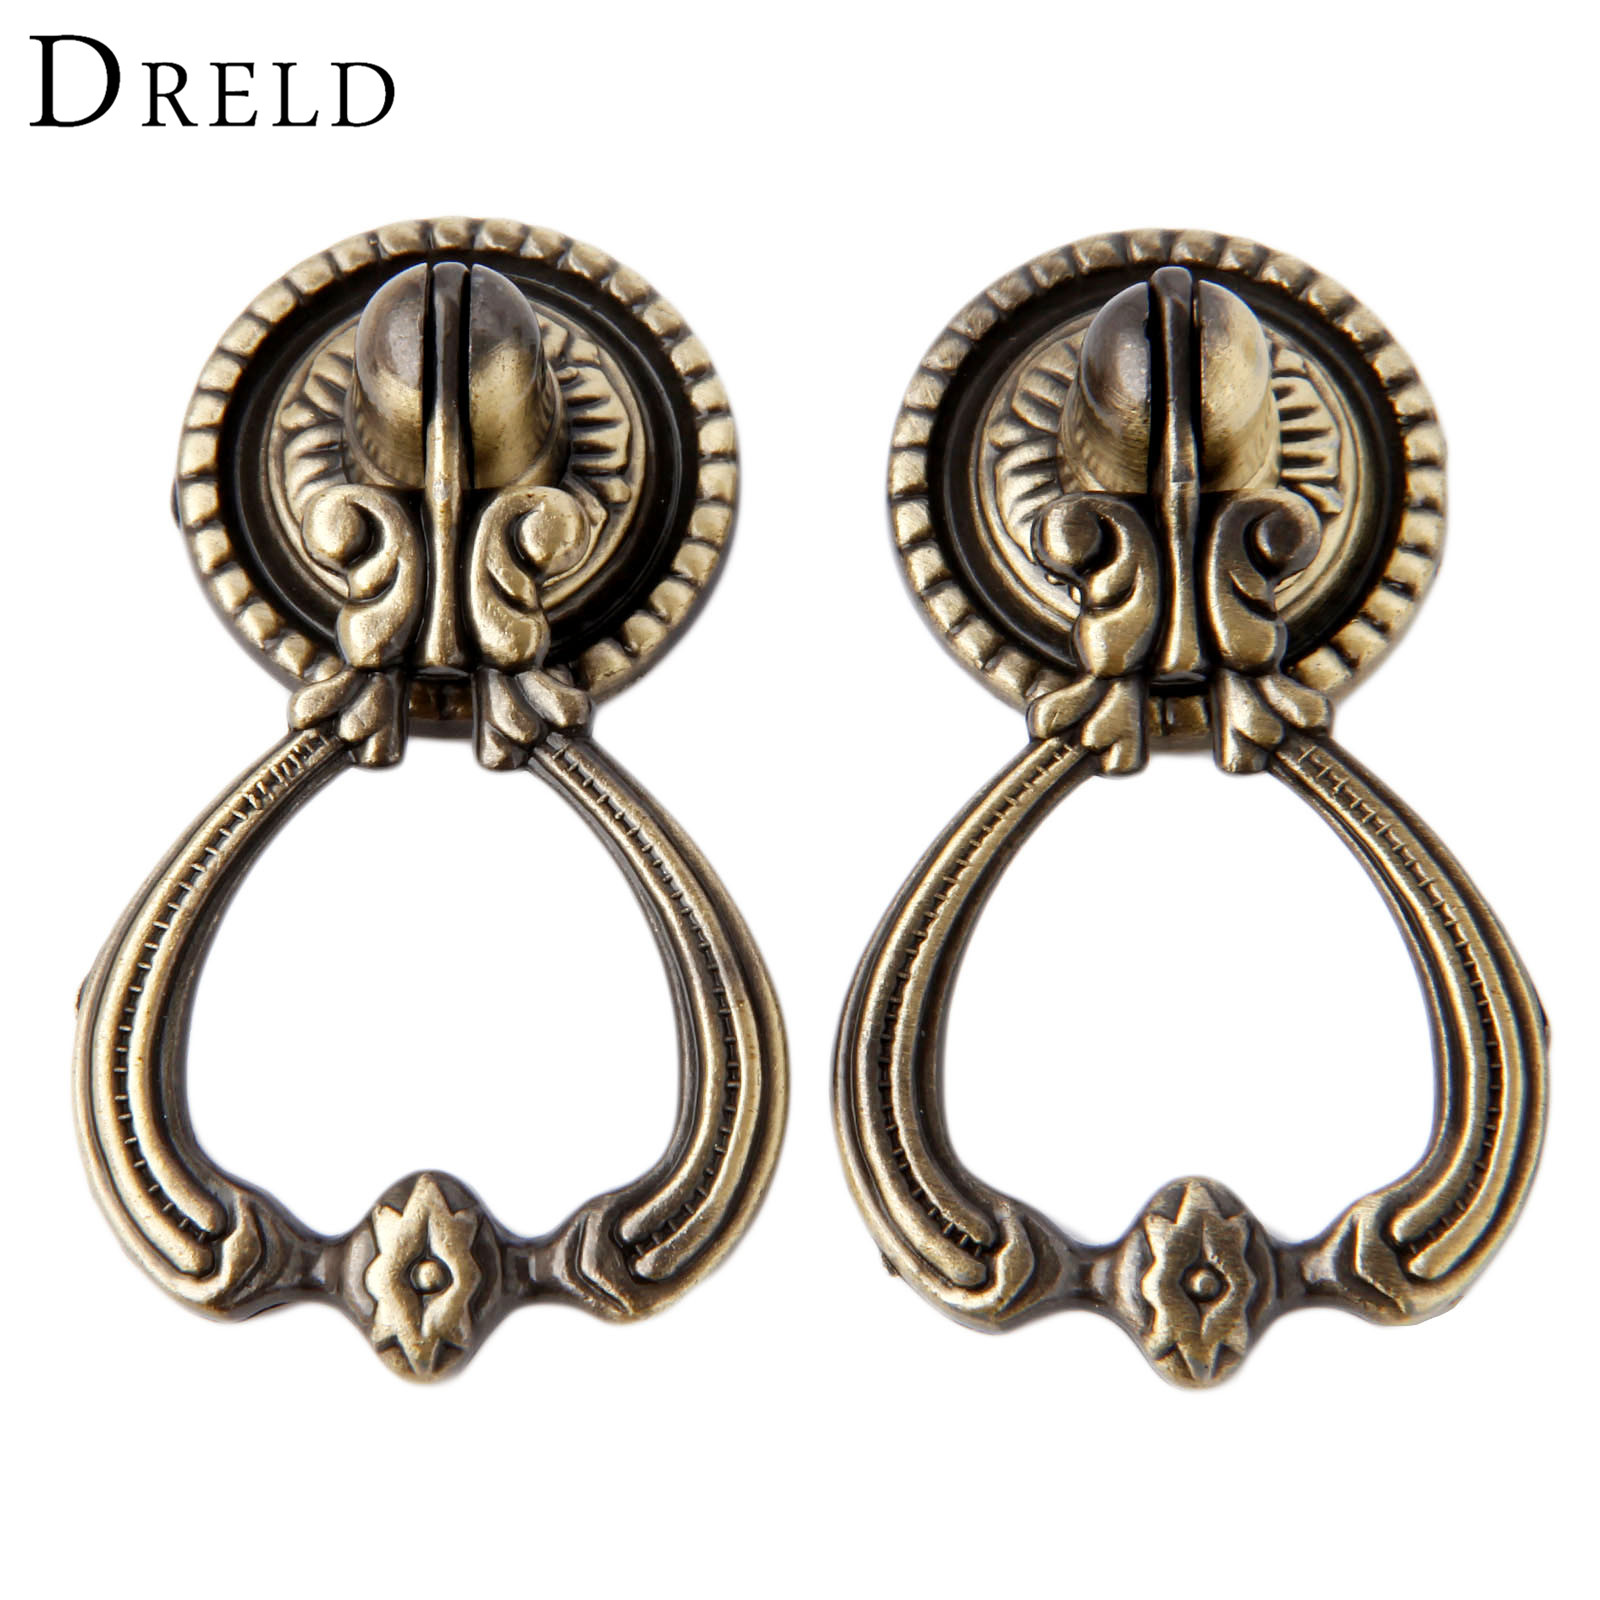 DRELD 2Pcs Antique Brass Furniture Handles Vintage Cabinet Knobs and Handles Door Closet Cabinet Drawer Pull Handle for Kitchen dreld teapot antique furniture handle alloy drawer door knobs closet cupboard kitchen pull handle cabinet knobs and handles